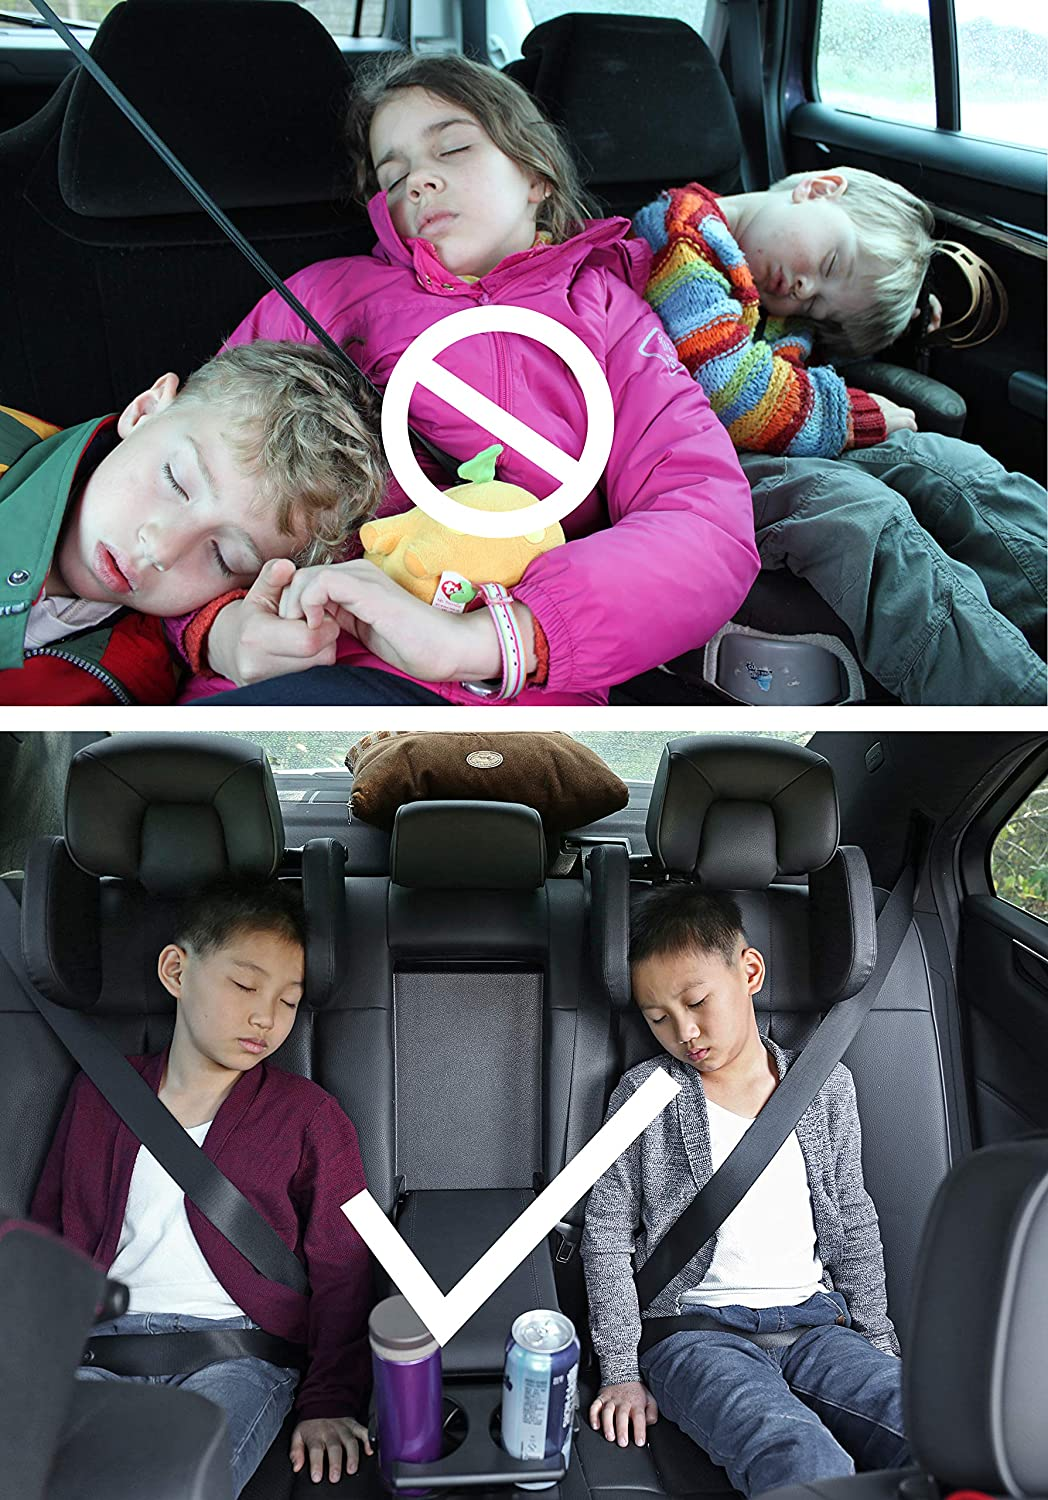 PVC Beige LEADSIGN Adjustable Car Headrest A Comfortable and Safe Car Seat Pillow for Head and Neck Support During Car Travel